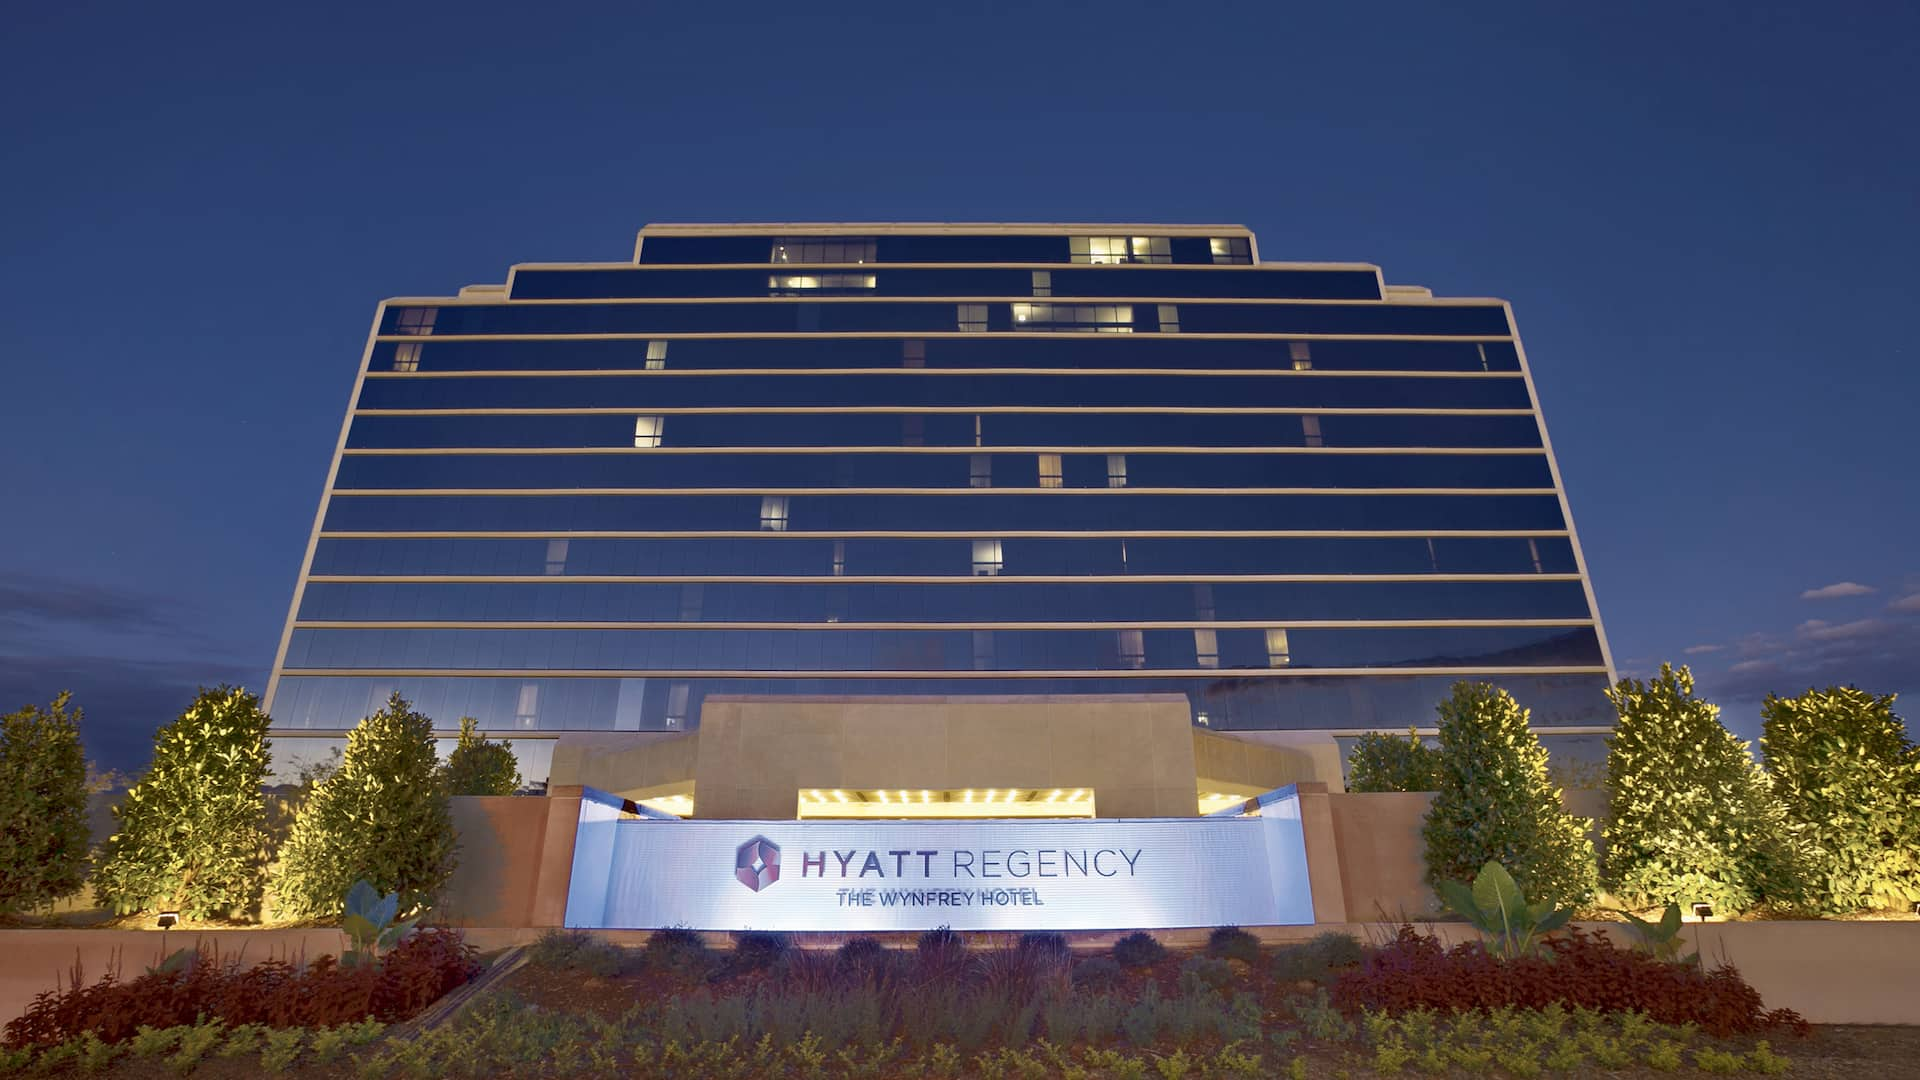 Hyatt Regency Birmingham – The Wynfrey Hotel Exterior View